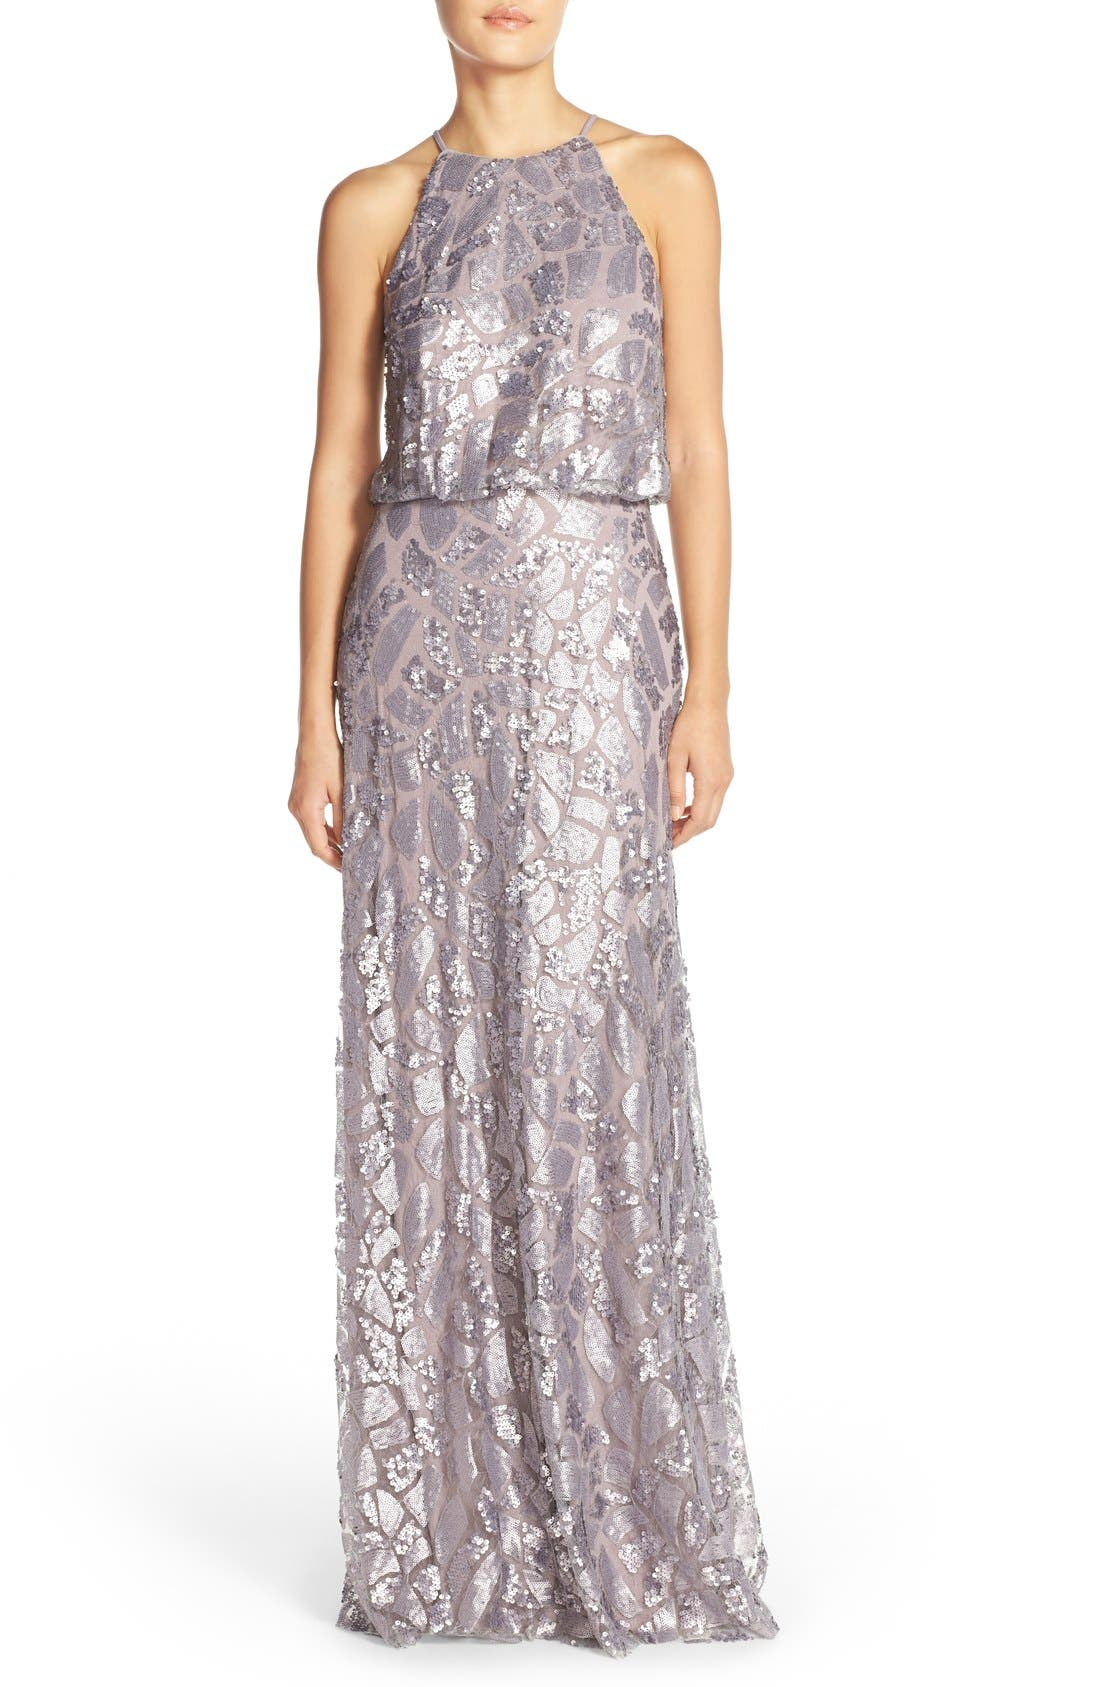 Main Image - Donna Morgan 'Tiffany' Sequin Halter-Style Blouson Gown